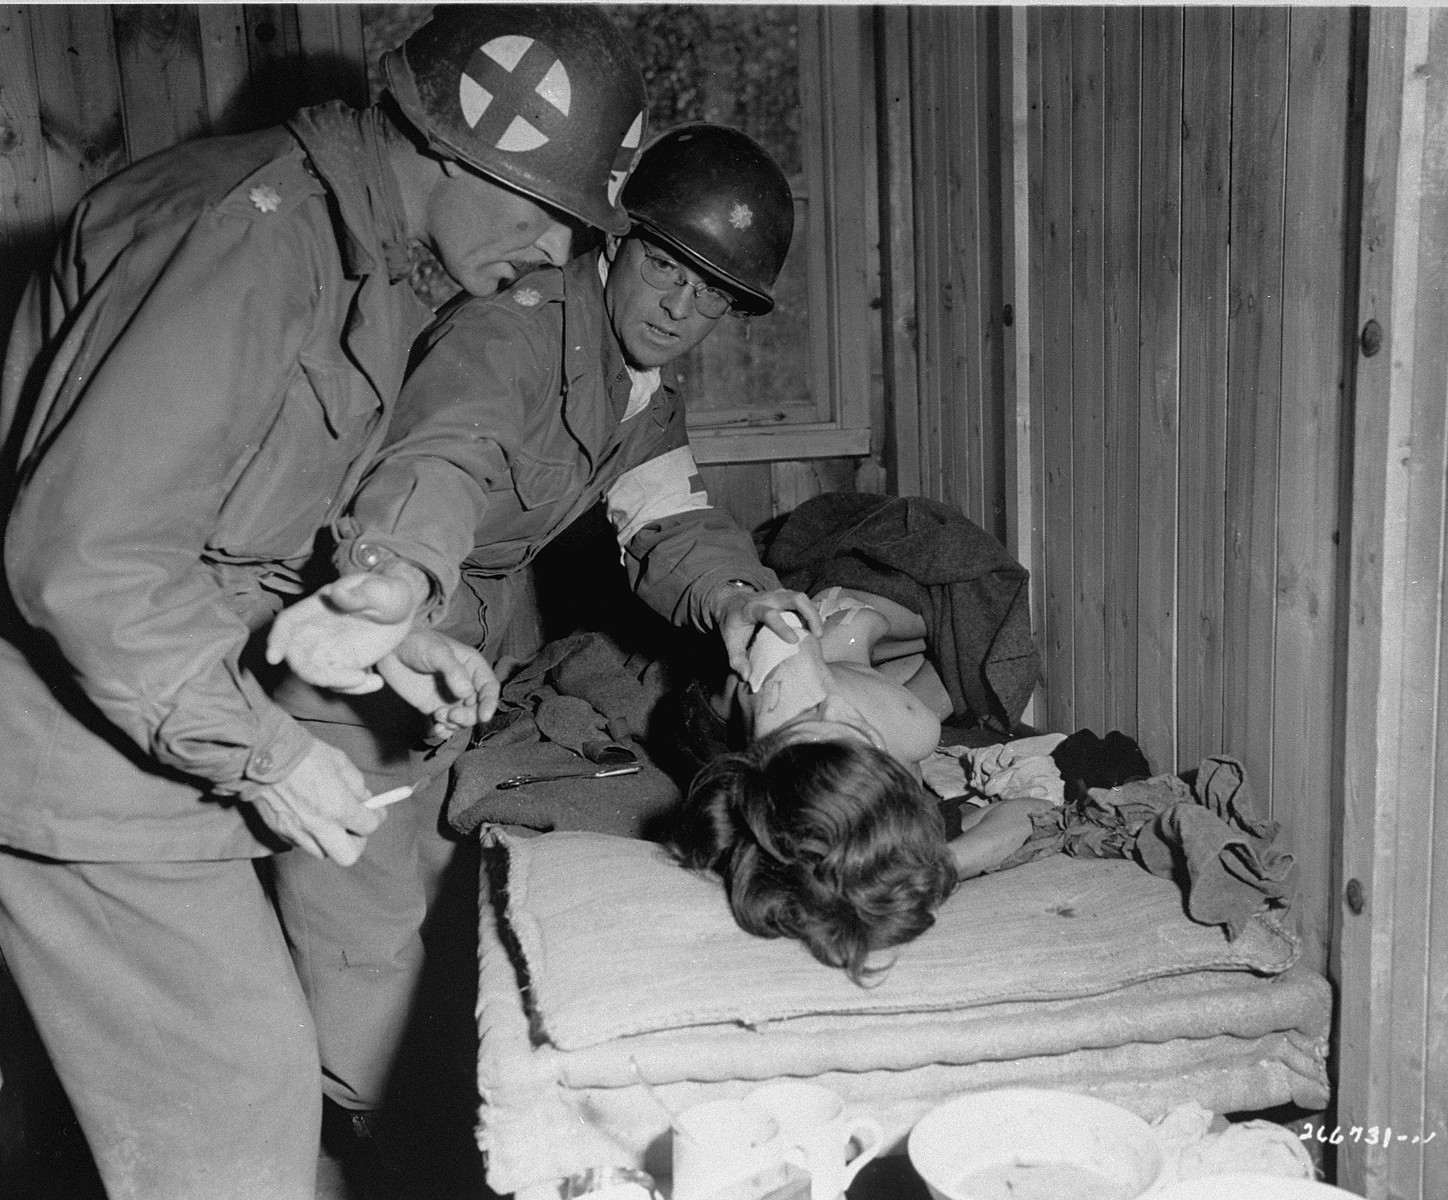 Lt. Col. J. W. Branch, Chief Surgeon of the 6th Armored Division, 3rd U.S. Army, treats the wounds of a Hungarian Jewish woman in Penig, a sub-camp of Buchenwald.